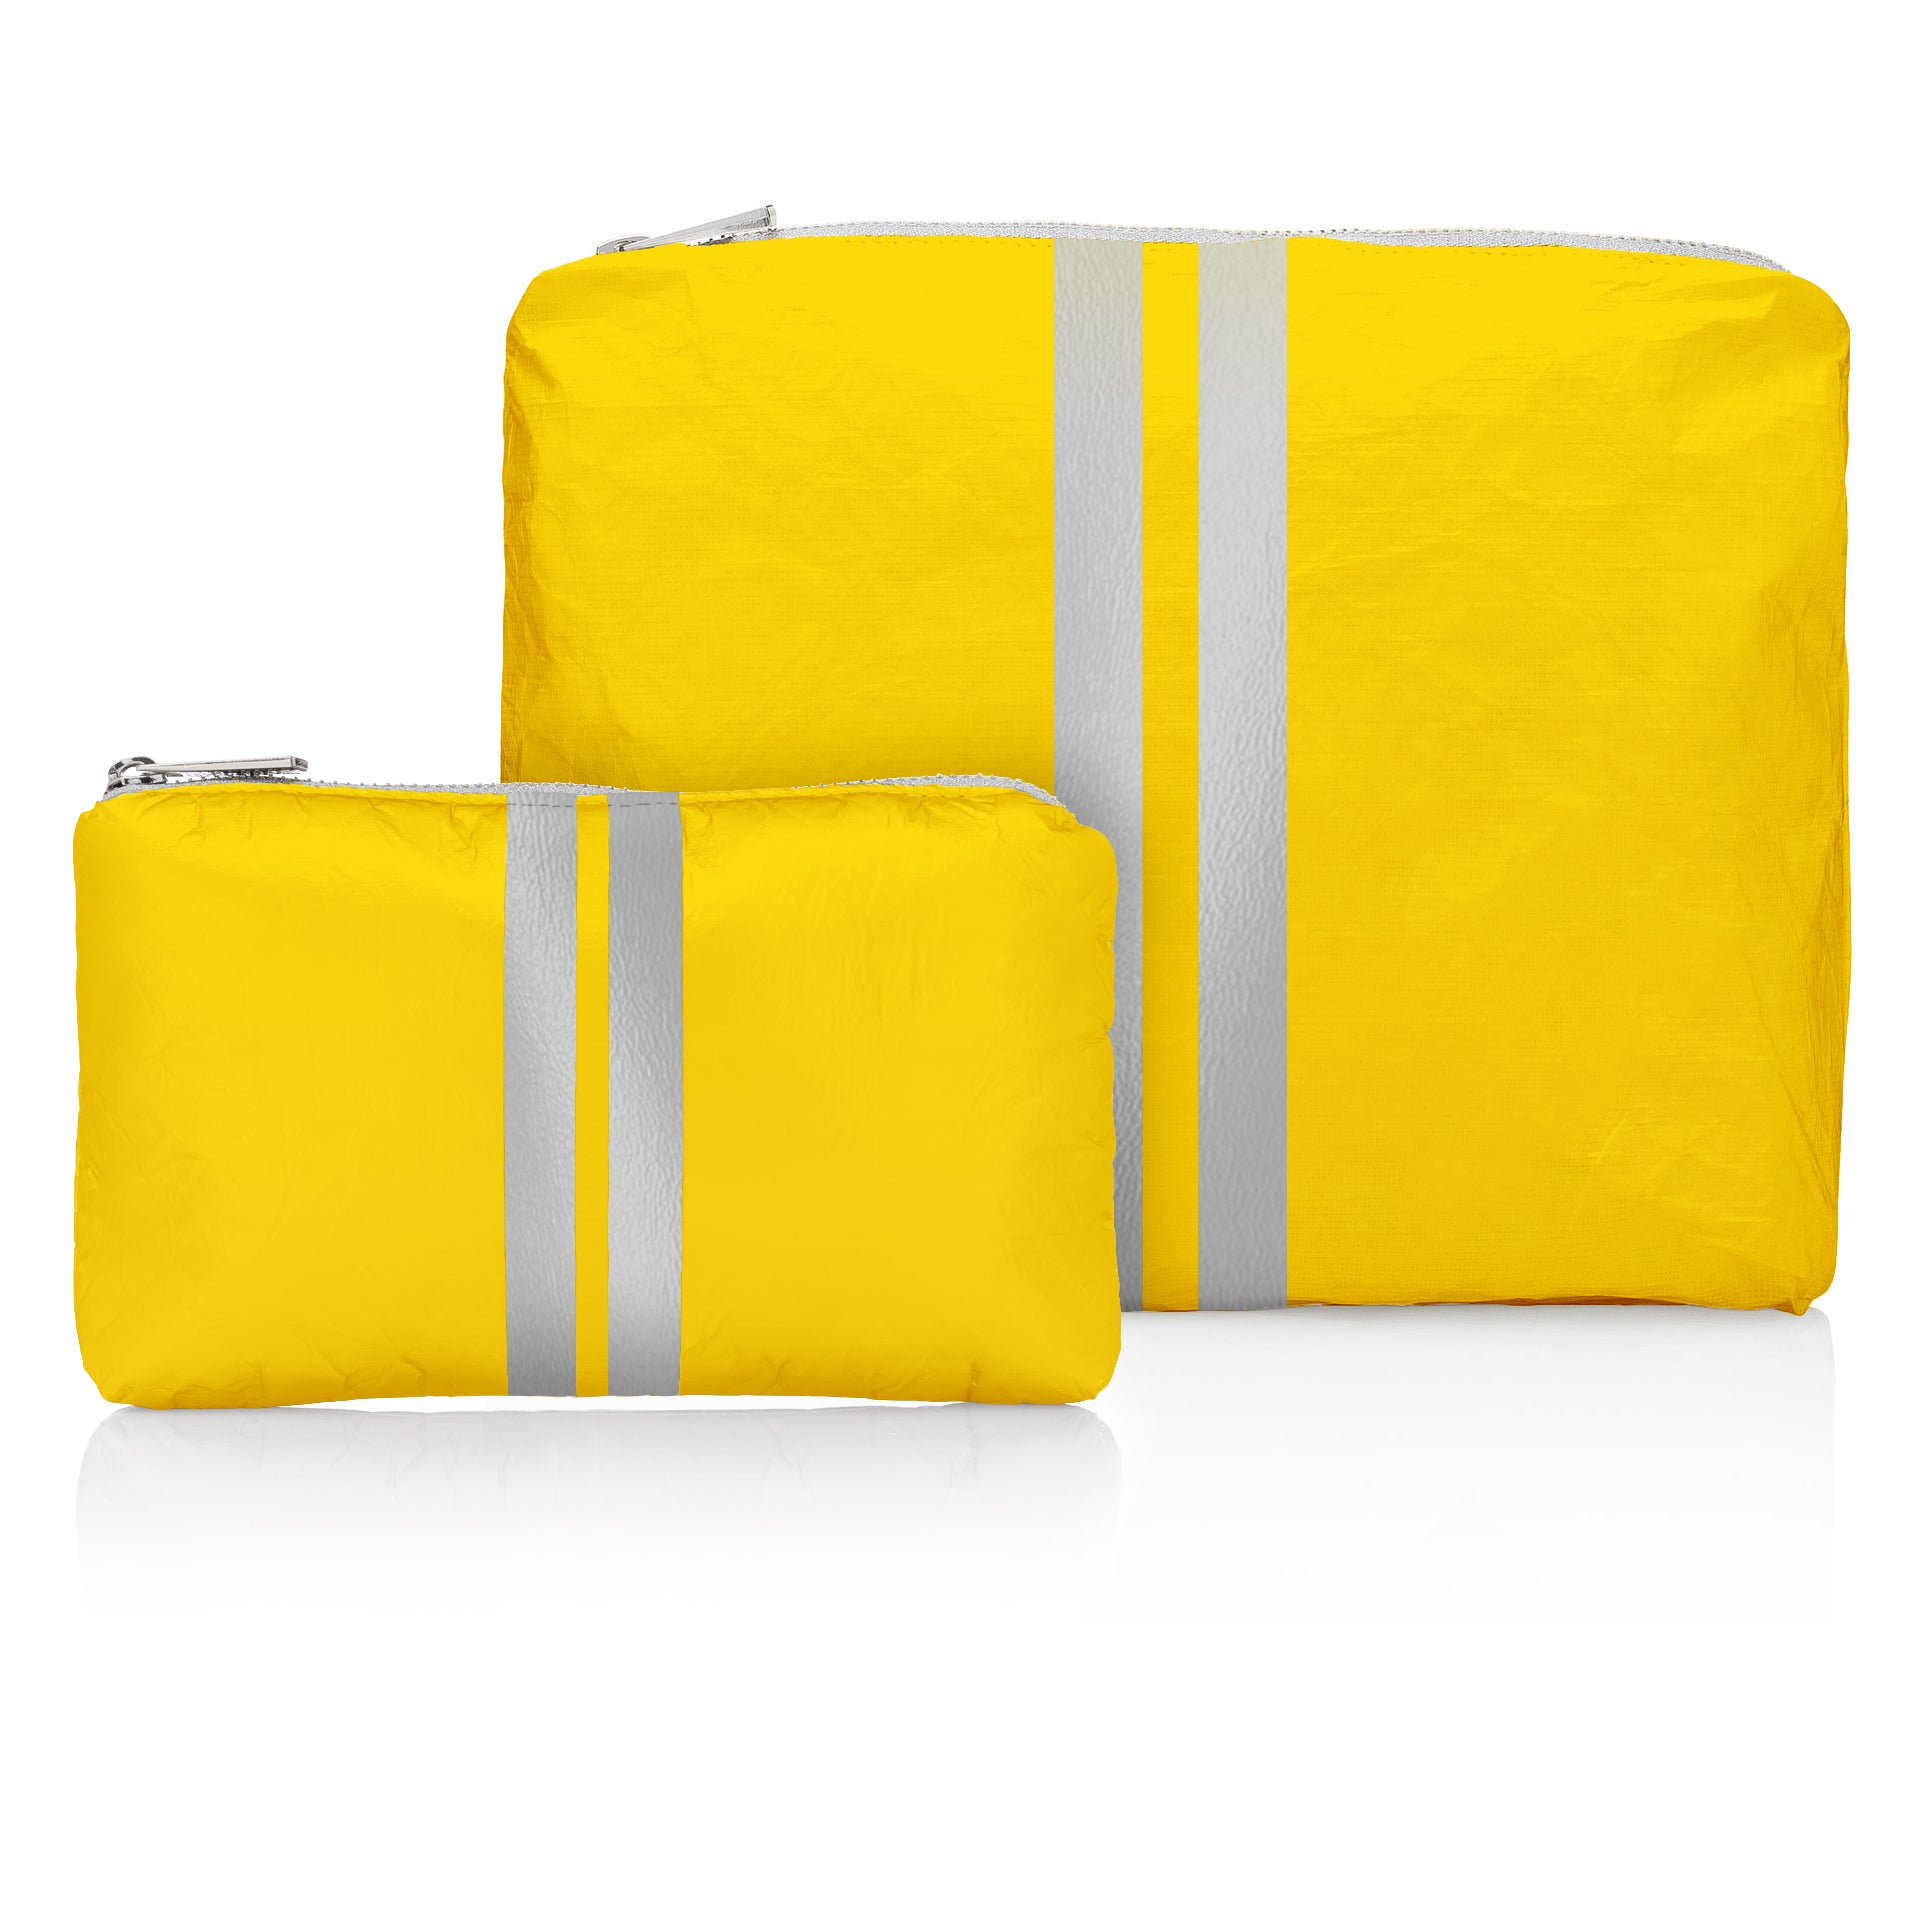 Cute Travel Pouch Set - Set of Two - Island Sunshine with Metallic Silver Stripes